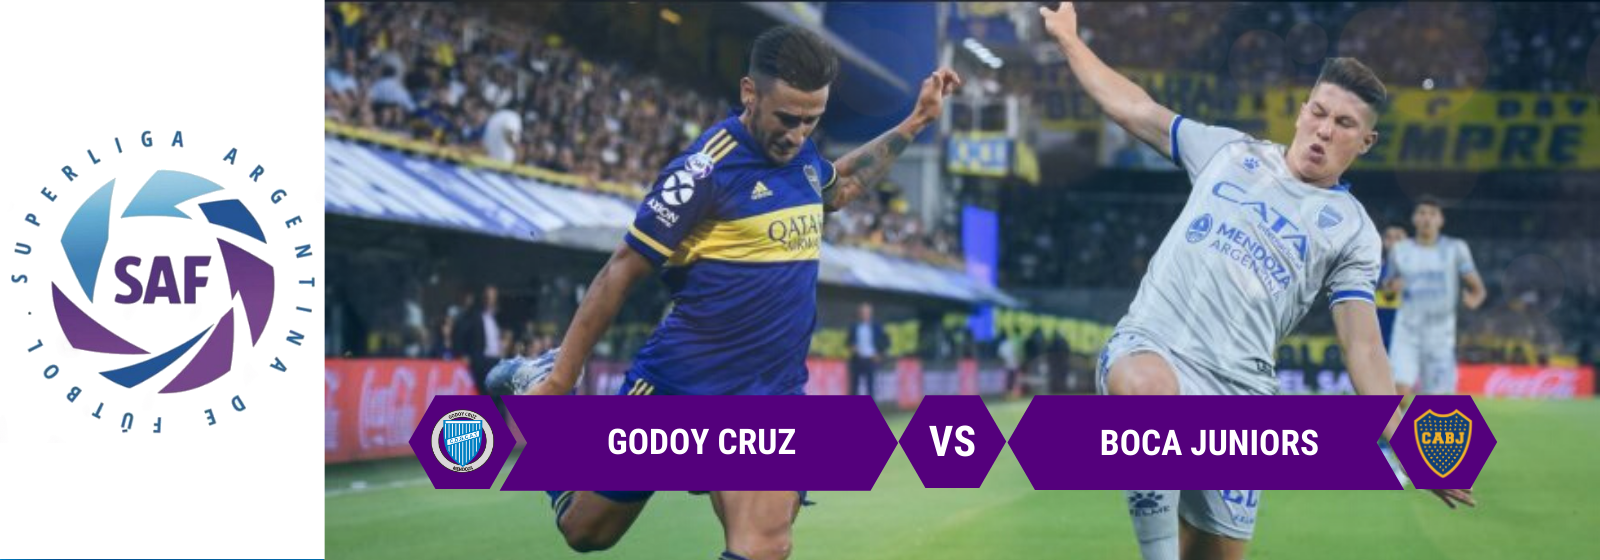 Asianconnect: Godoy Cruz vs Boca Odds for March 14, 2020